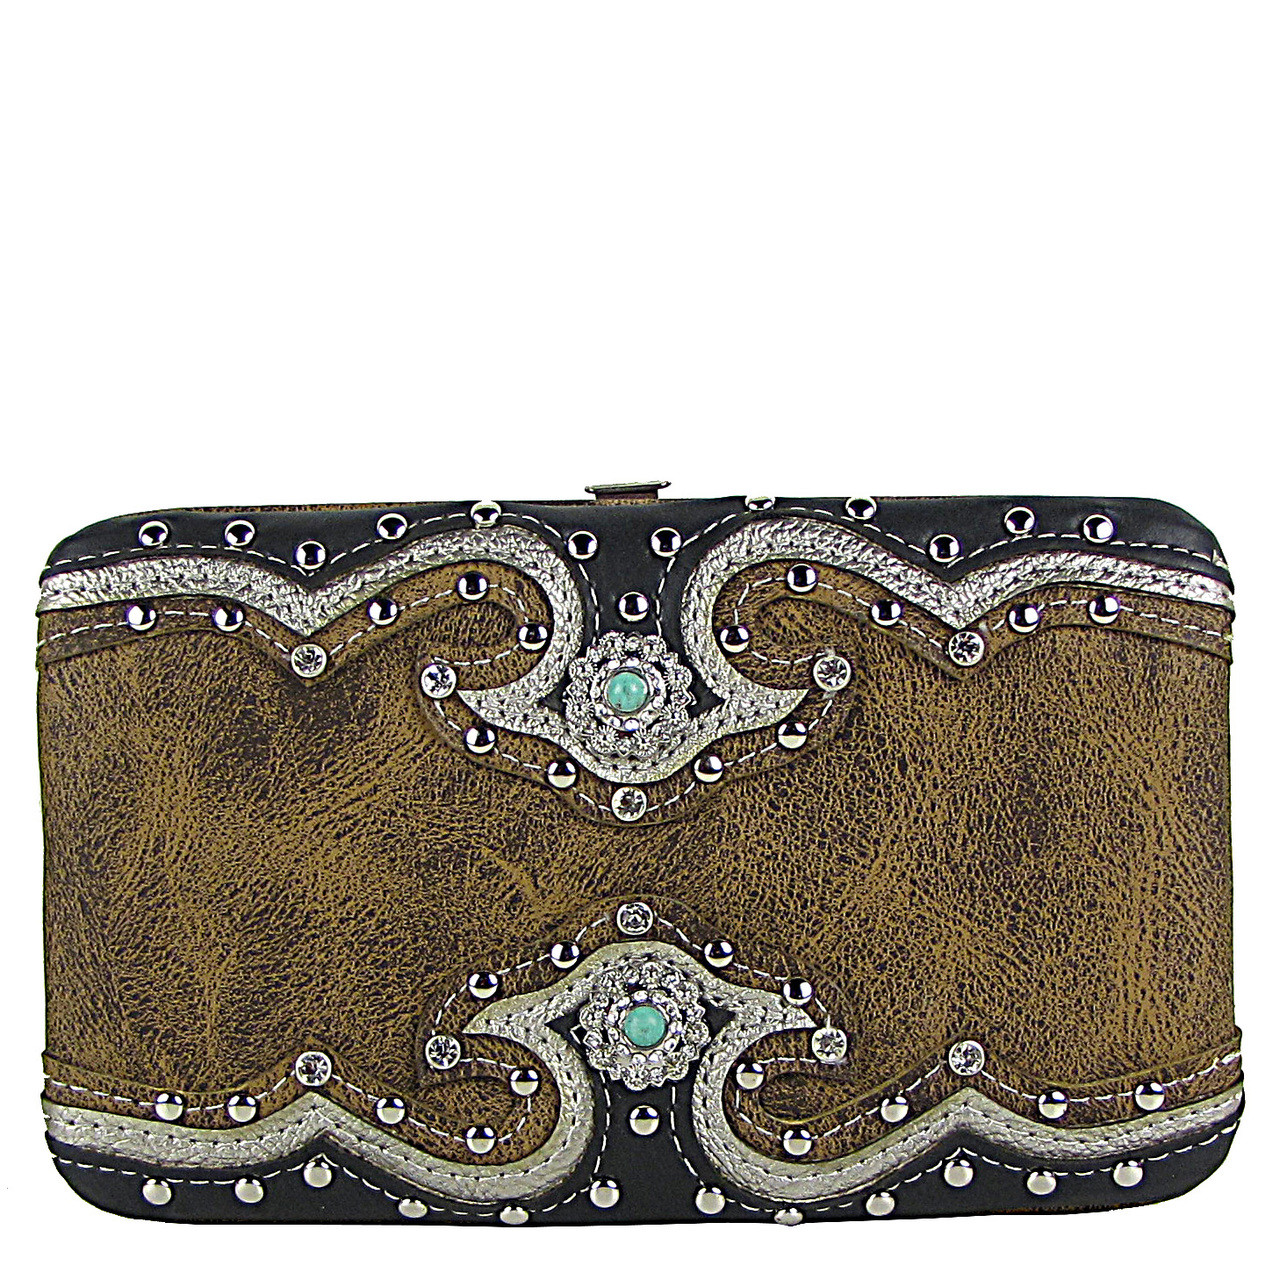 BROWN WESTERN STUDDED EMERALD STONE LOOK FLAT THICK WALLET FW2-12111BRN